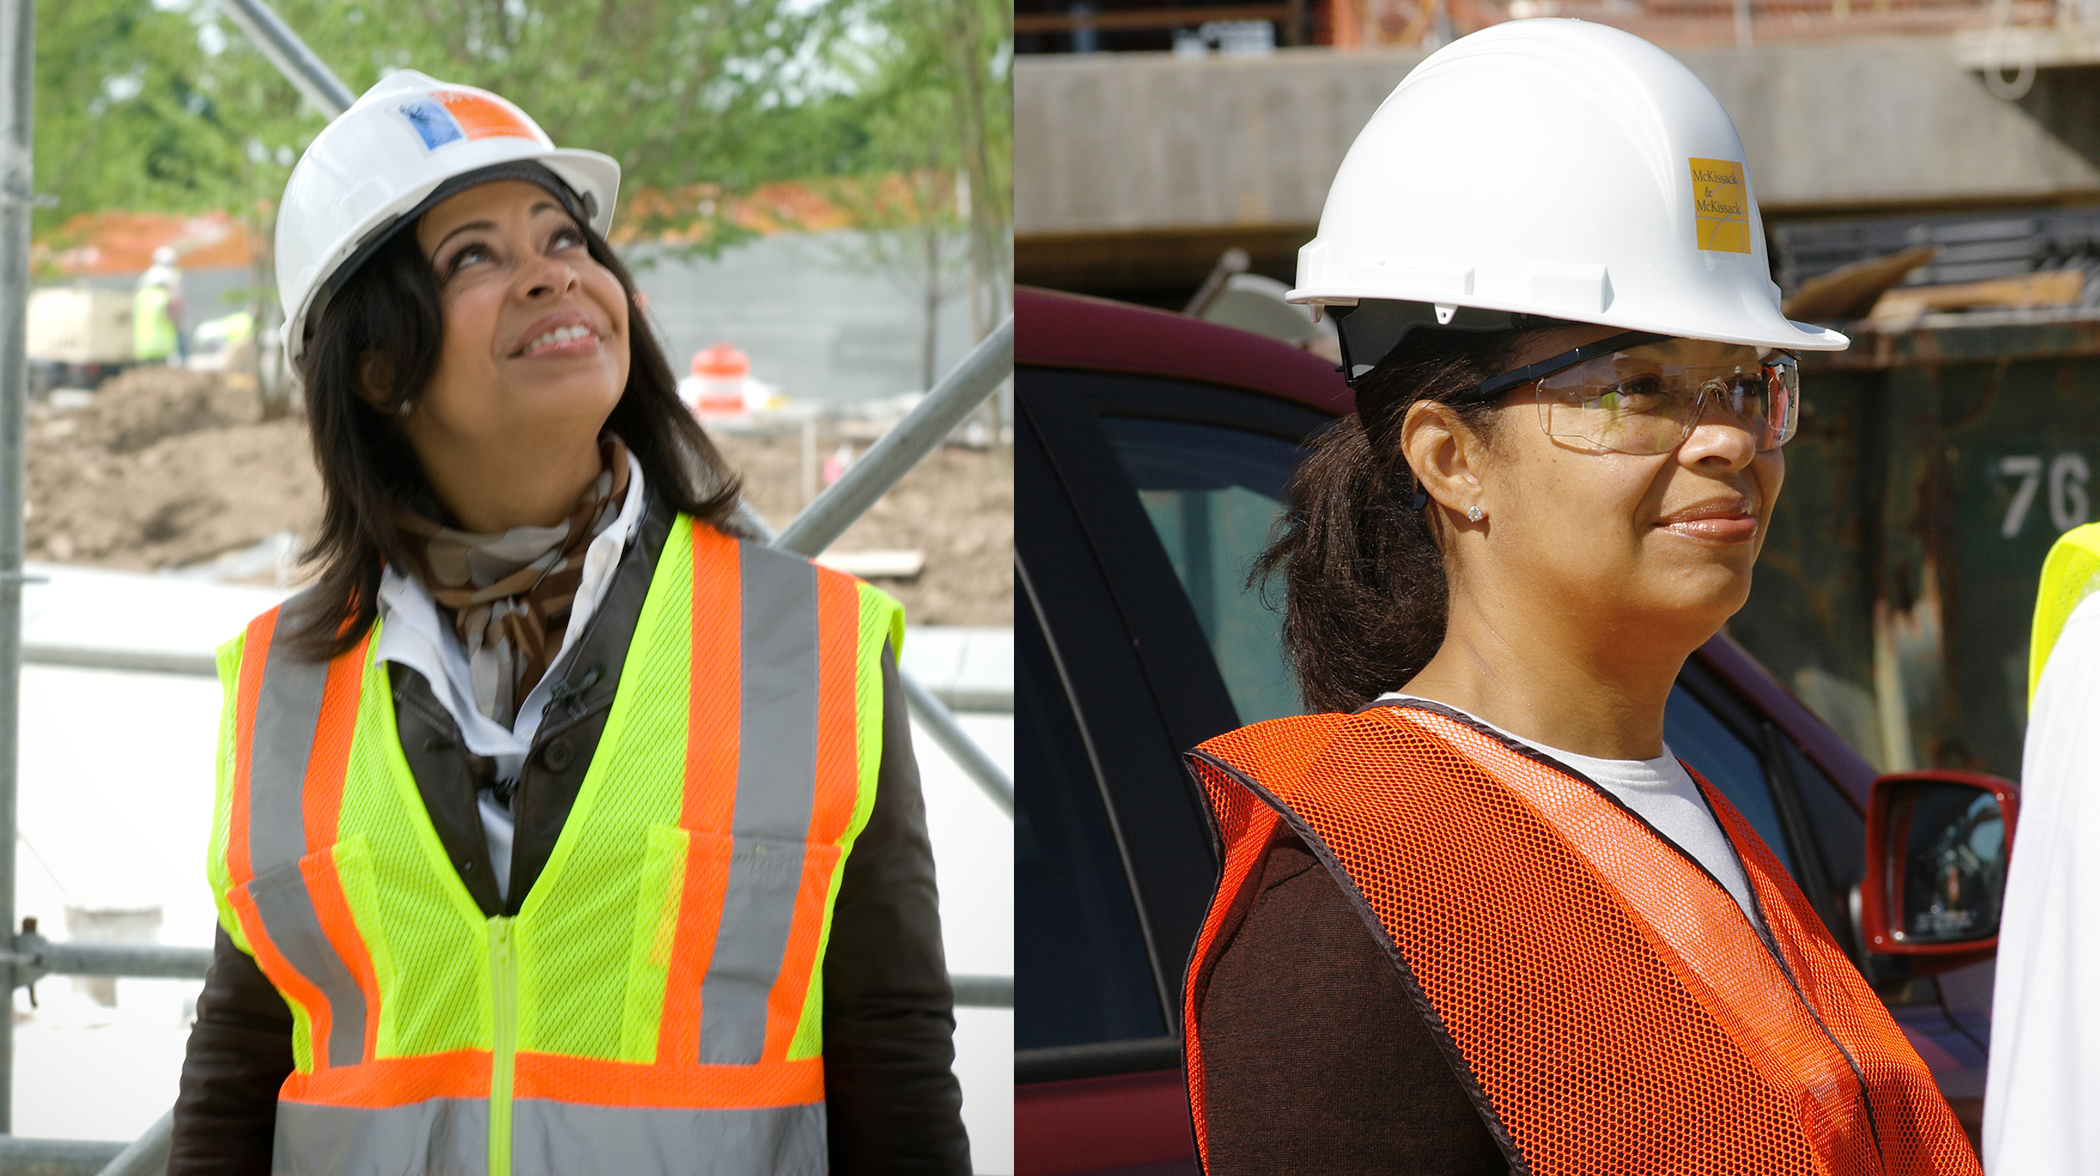 Women are vastly underrepresented in architecture, engineering and construction. Achieving gender diversity starts with acknowledging the AEC industry's breadth of sexism.